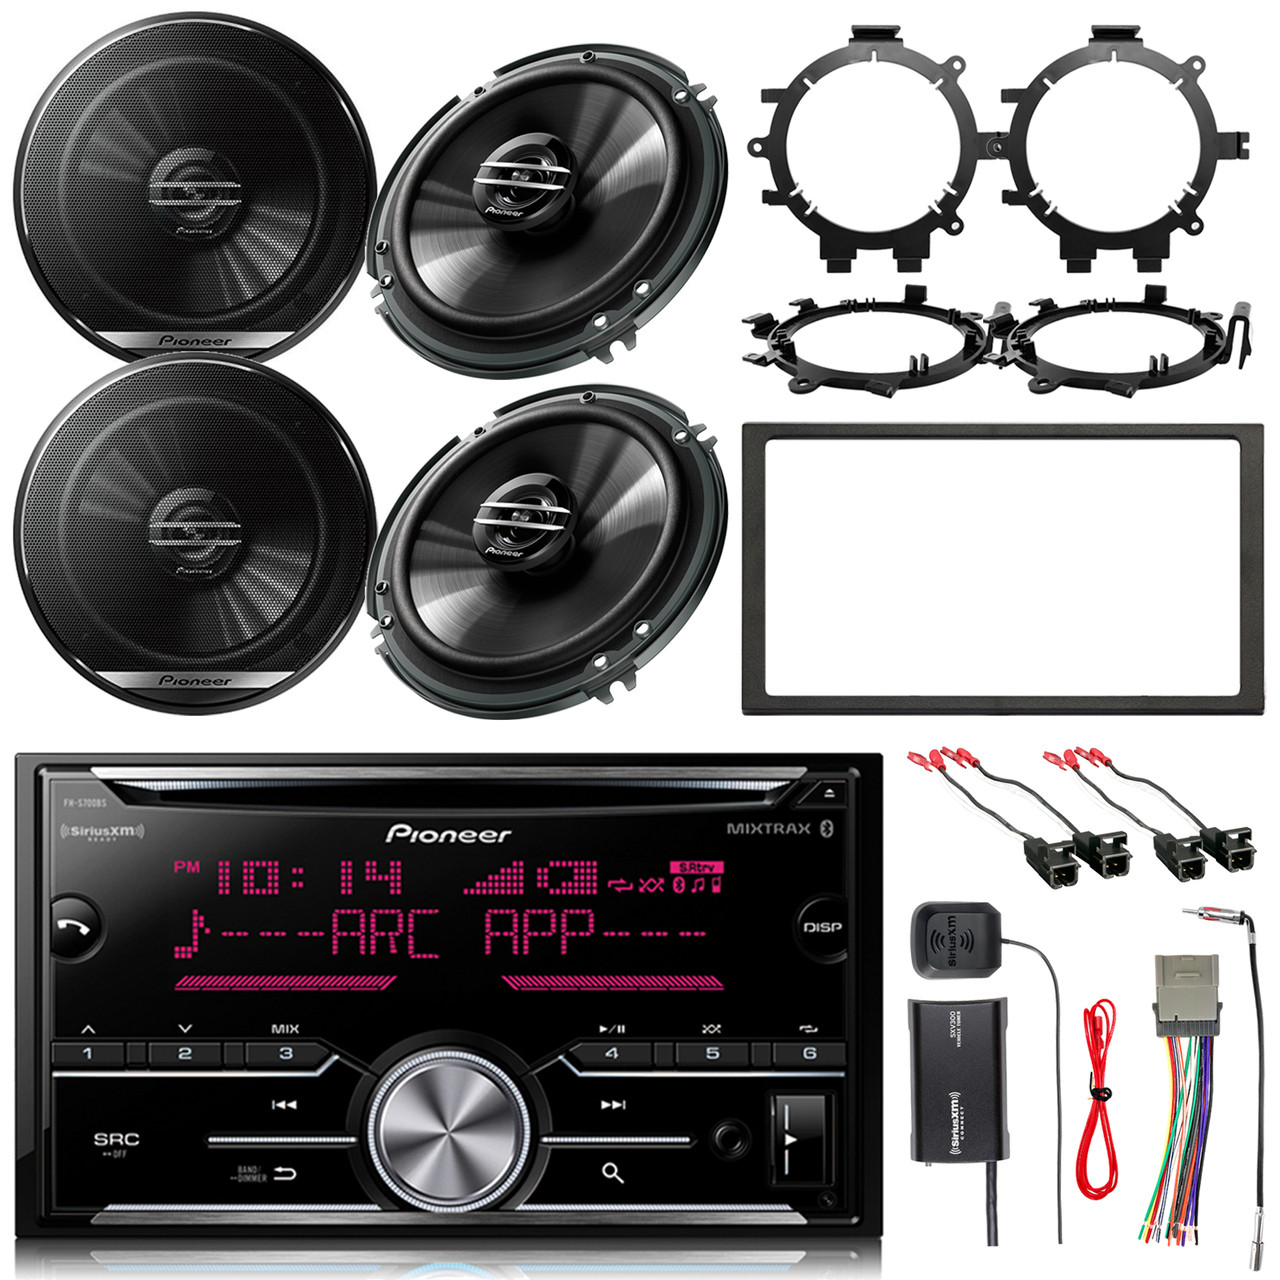 small resolution of pioneer 2din cd bluetooth receiver 4x 6 5 speakers dash kit stereo wiring harness antenna adapter siriusxm radio tuner 4x speaker wire harness